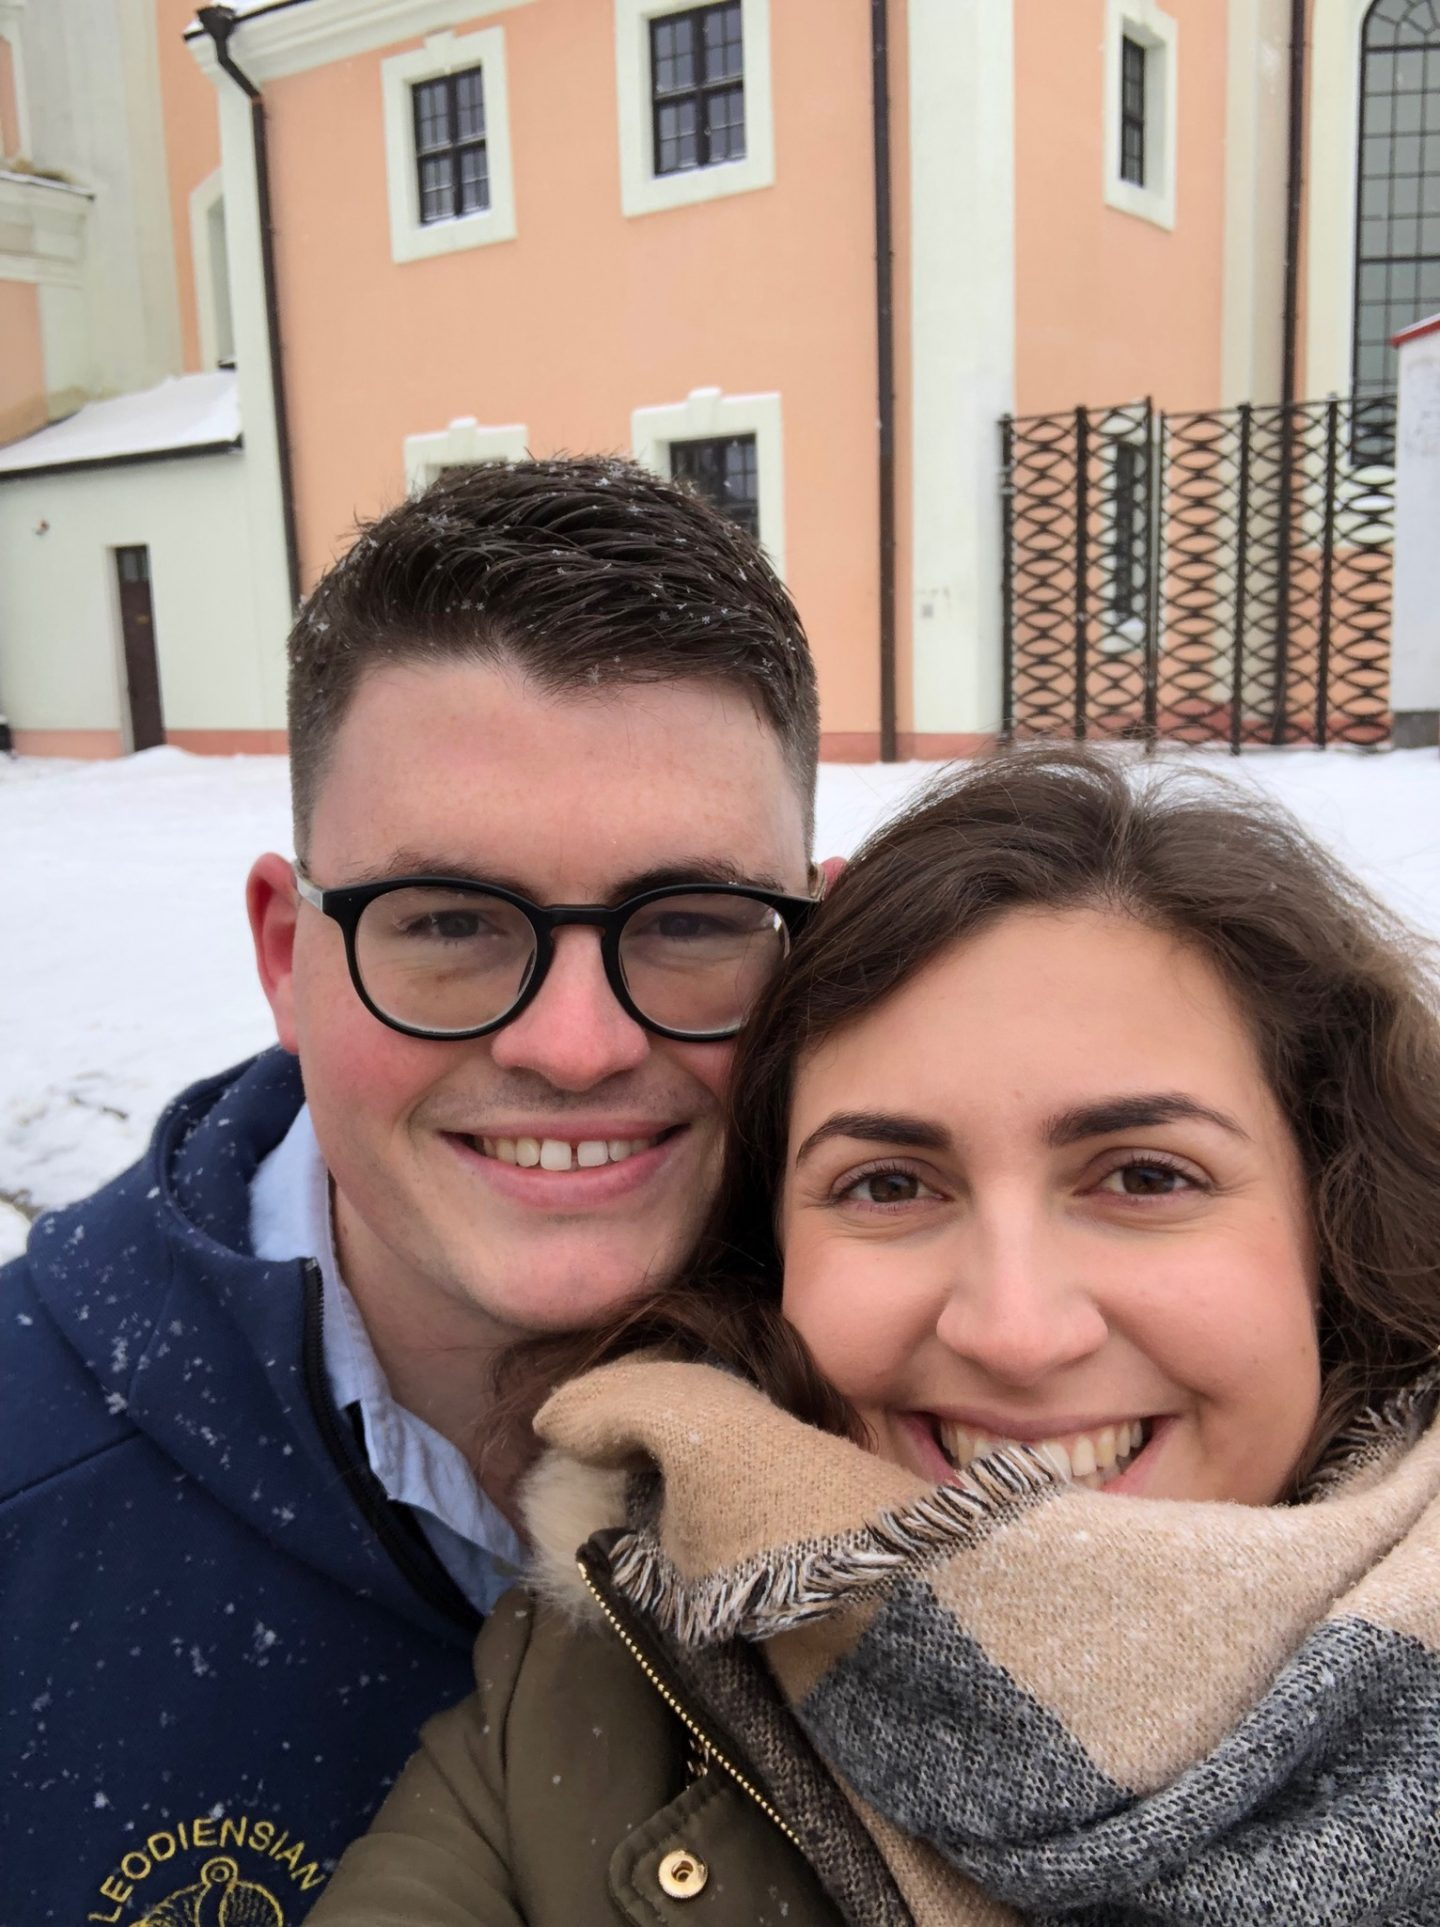 Selfie of Nell and Billy in Vilnius, surrounded by snow and smiling at the camera with rosy cheeks.